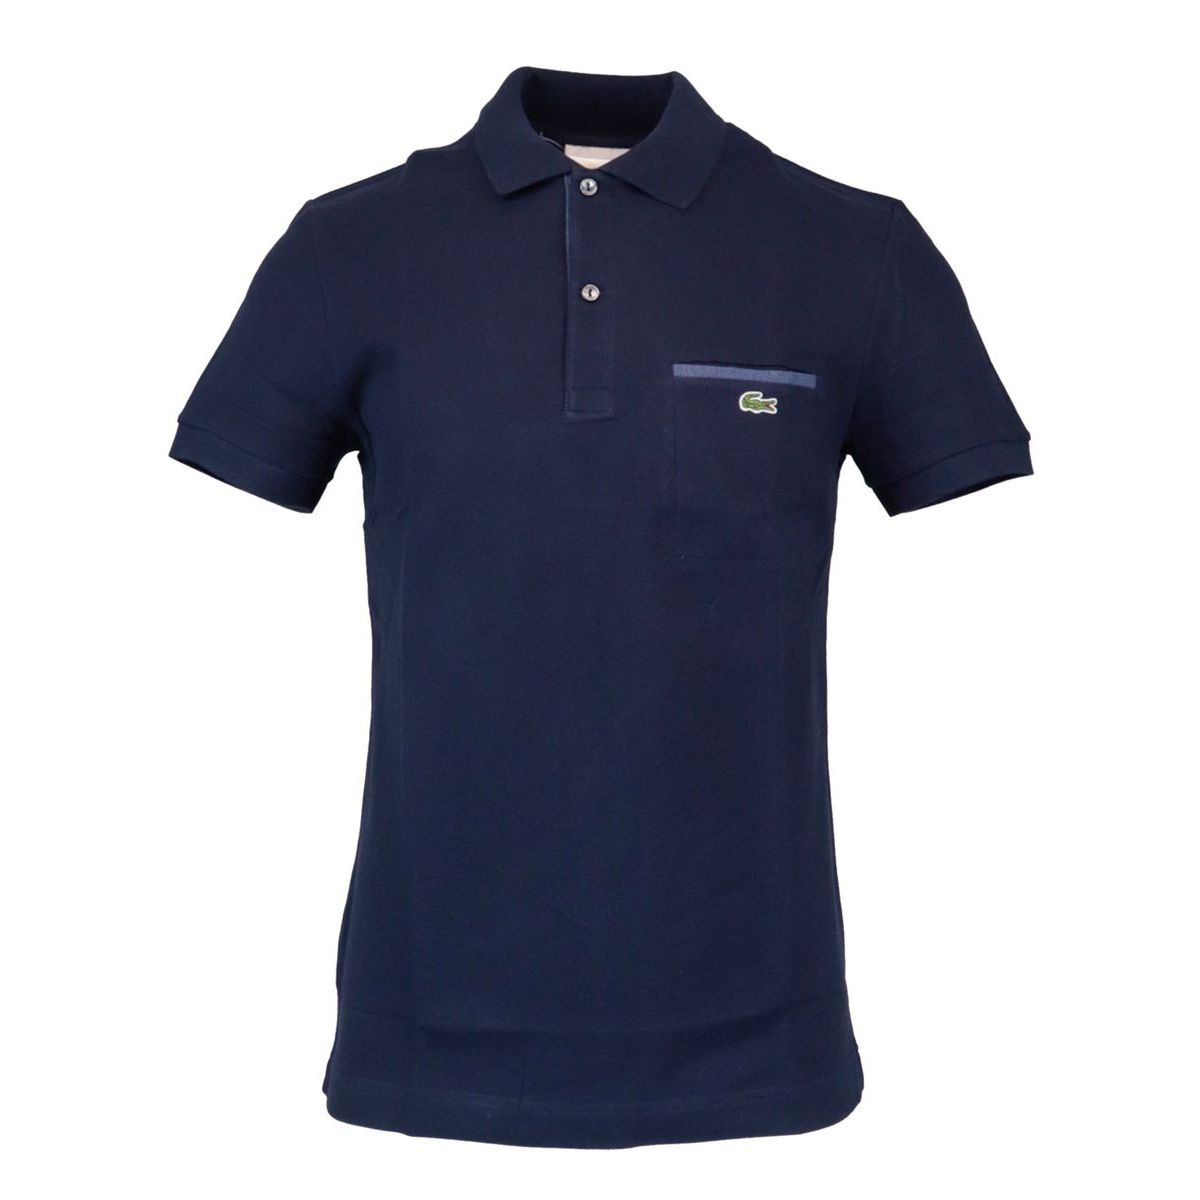 Regular Fit polo shirt in cotton pique with contrasting details Navy Lacoste